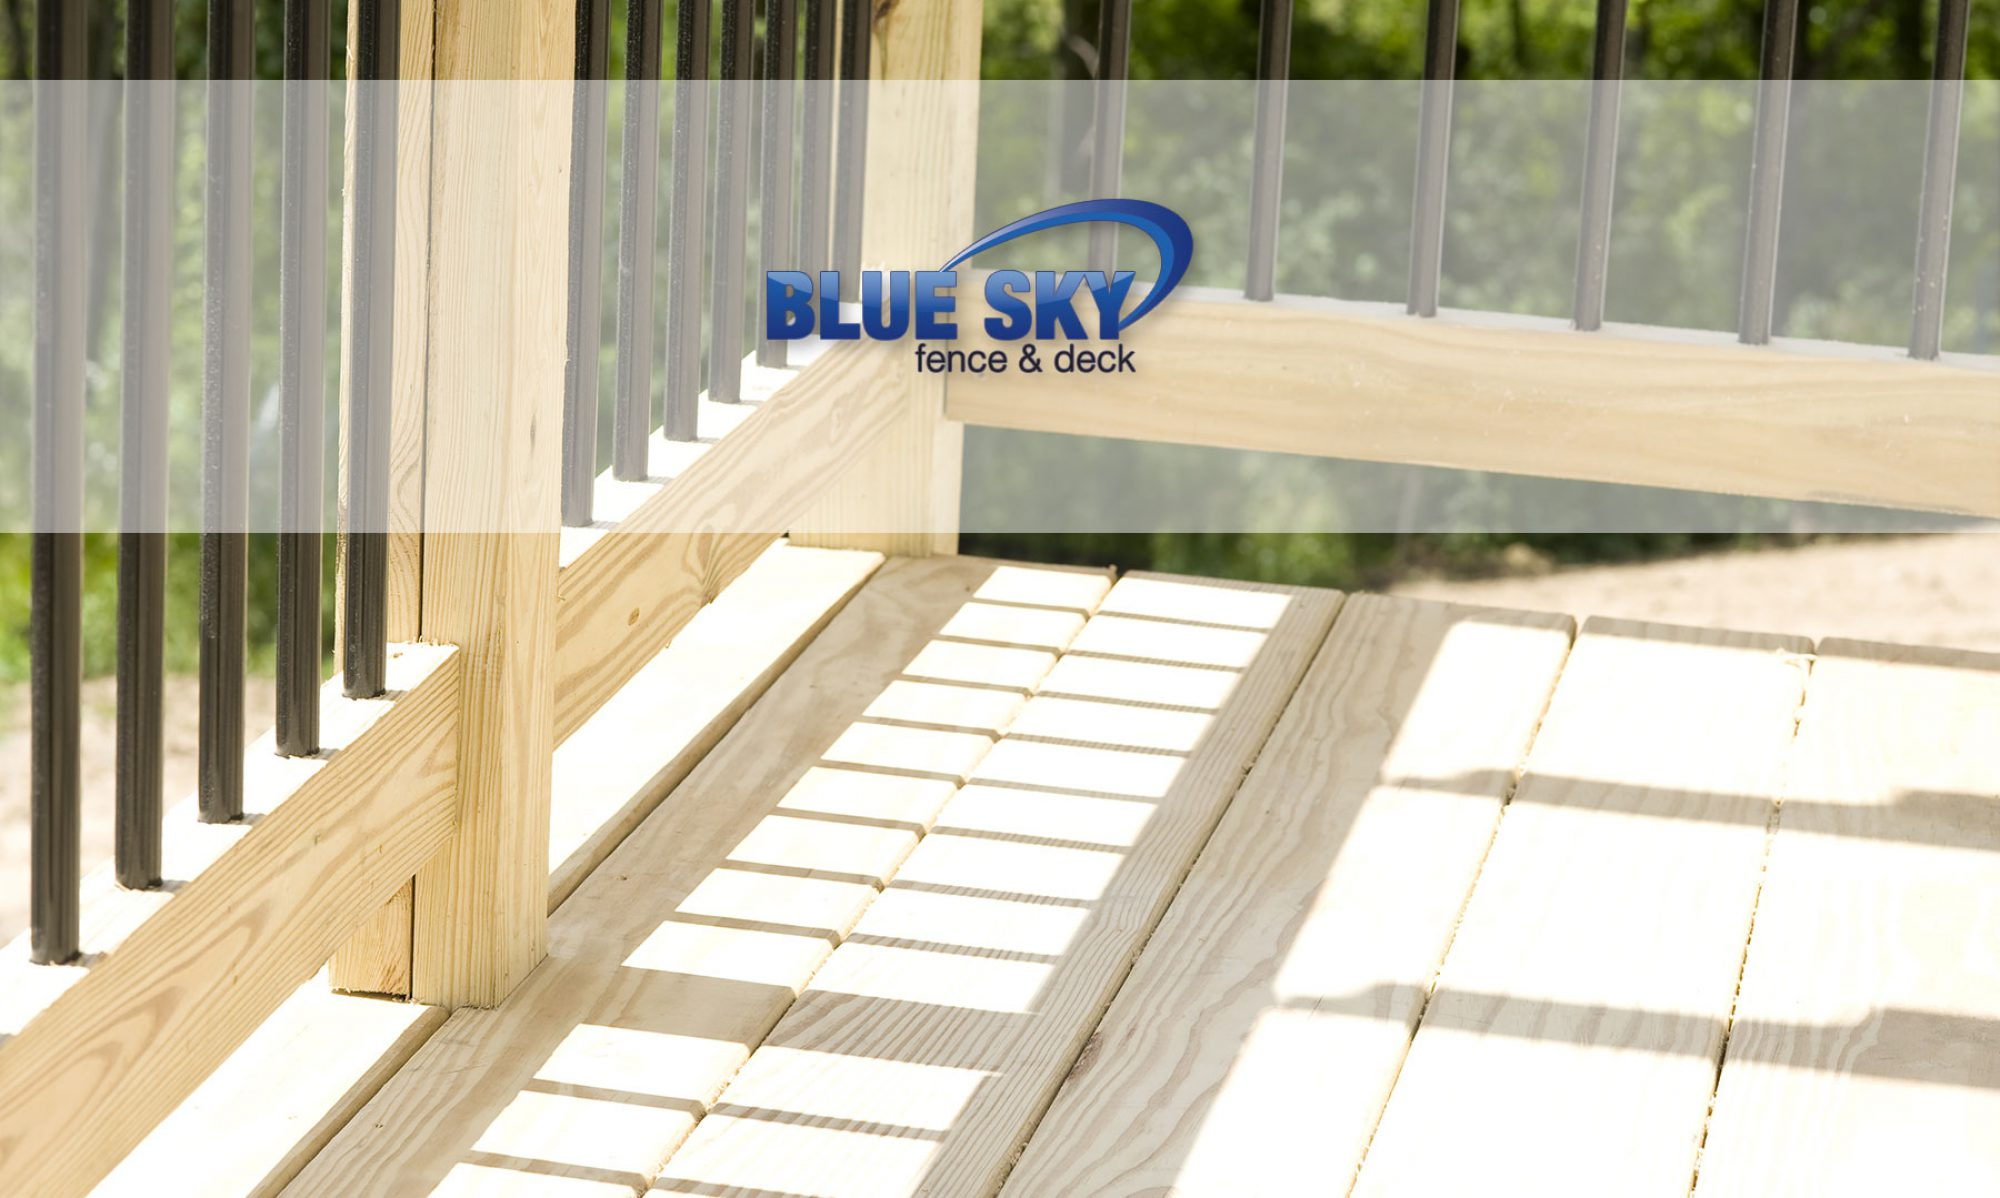 Blue Sky Fence  Deck